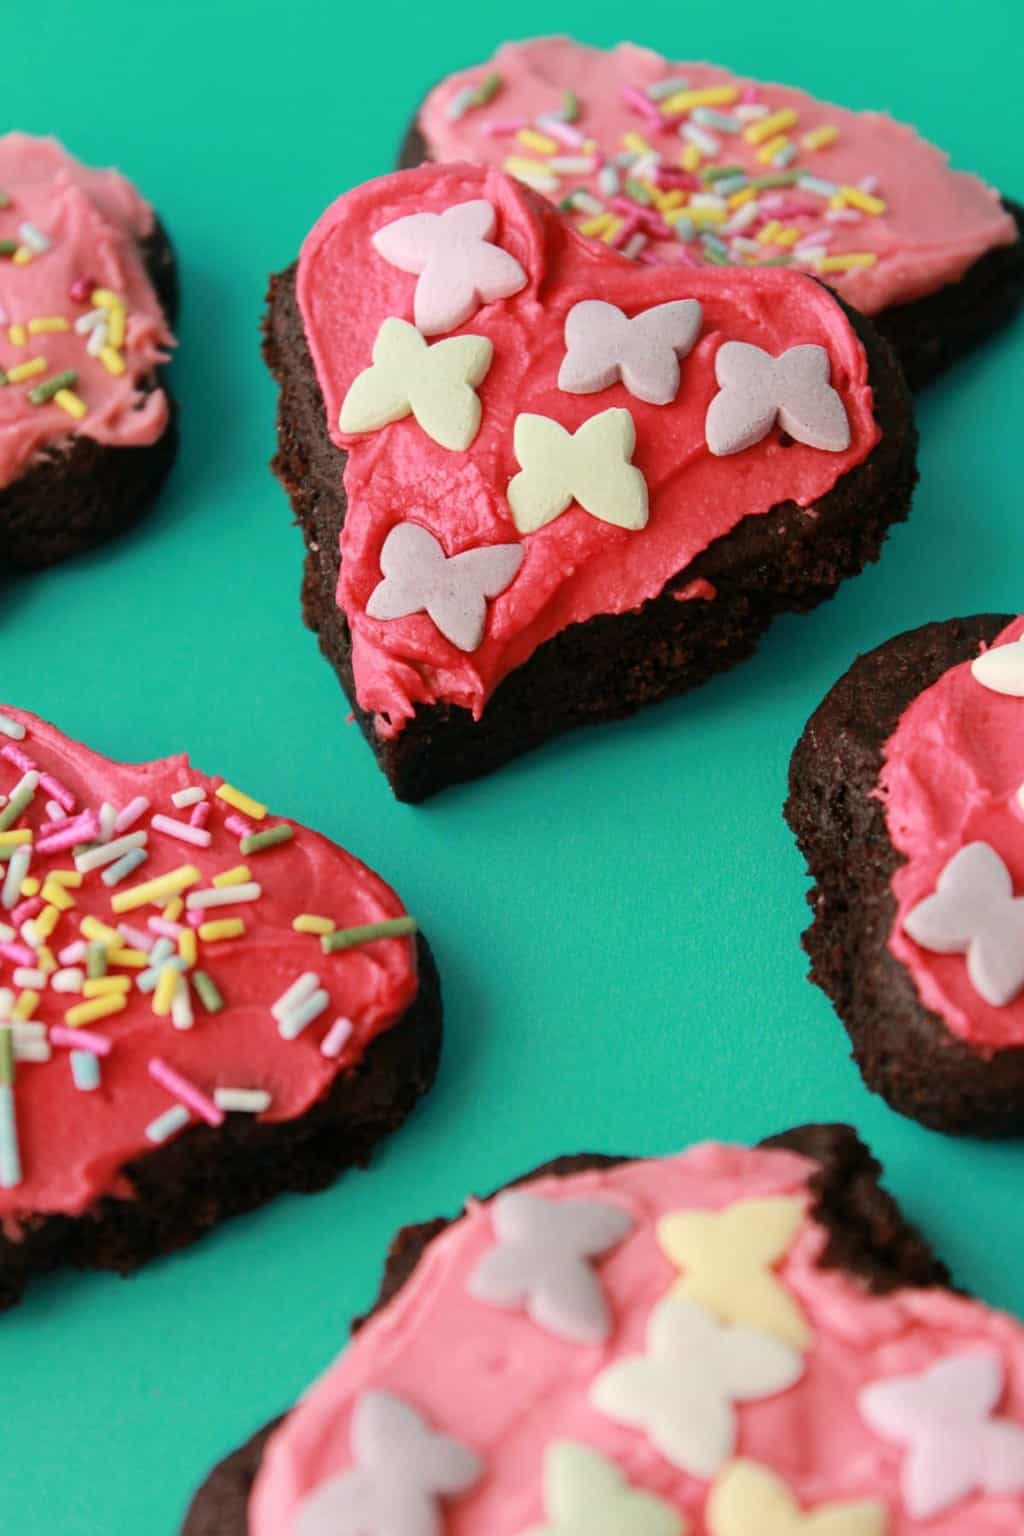 Vegan chocolate sugar cookies with pink frosting and sprinkles.